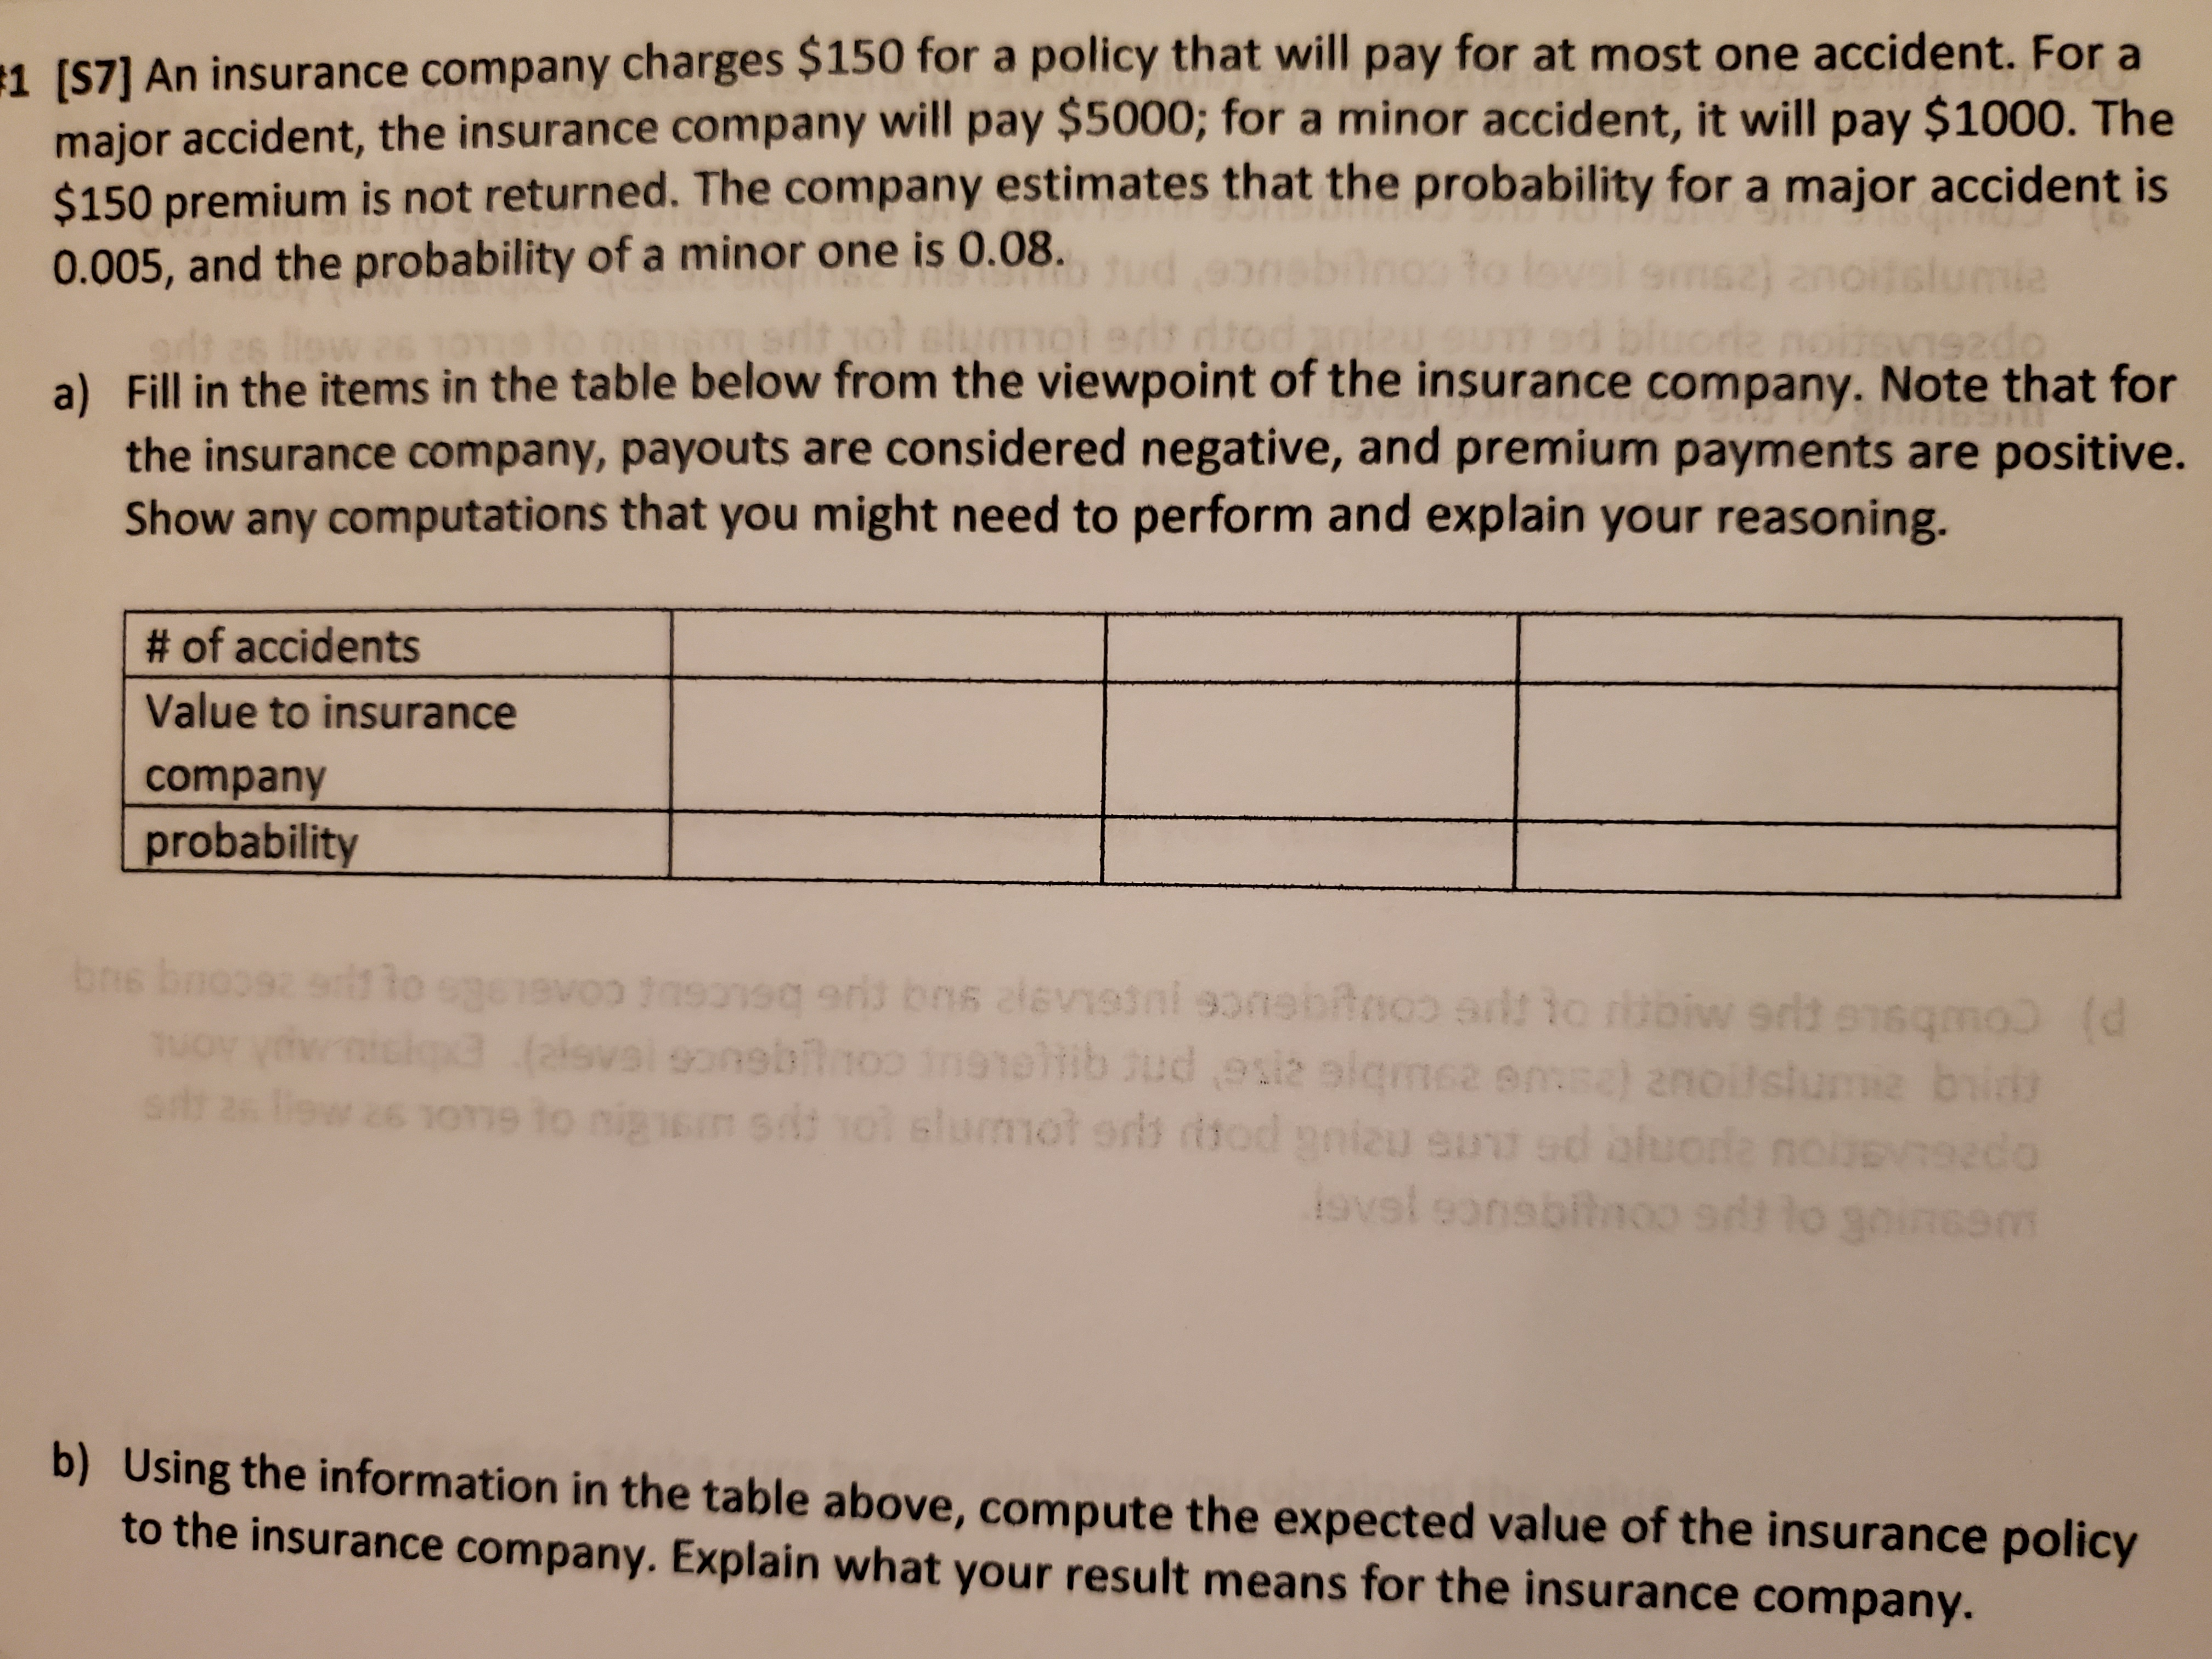 #1 [S7] An insurance company charges $150 for a policy that will pay for at most one accident. For a major accident, the insurance company will pay $5000; for a minor accident, it will pay $1000. The $150 premium is not returned. The company estimates that the probability for a major accident is ia 0.005, and the probability ofa minor one is 0.08. s2) tol a) Fill in the items in the table below from the viewpoint of the insurance company. Note that for the insurance company, payouts are considered negative, and premium payments are positive. Show any computations that you might need to perform and explain your reasoning. # of accidents Value to insurance company probability bns bro to sg61e* bns davisn 90 ebtoo sidt 0 (d (alsvsi sonsbino too nigns sit ol slurmot srs diiod yniau eund sd aluoda noi 1N ud est alqm62 9m) 2n 90 sdy iew s 26 10T surd 92do ivel eonsbitn0o 9dtlo g0 6901 b) Using the information in the table above, compute the expected value of the insurance policy to the insurance company. Explain what your result means for the insurance company.